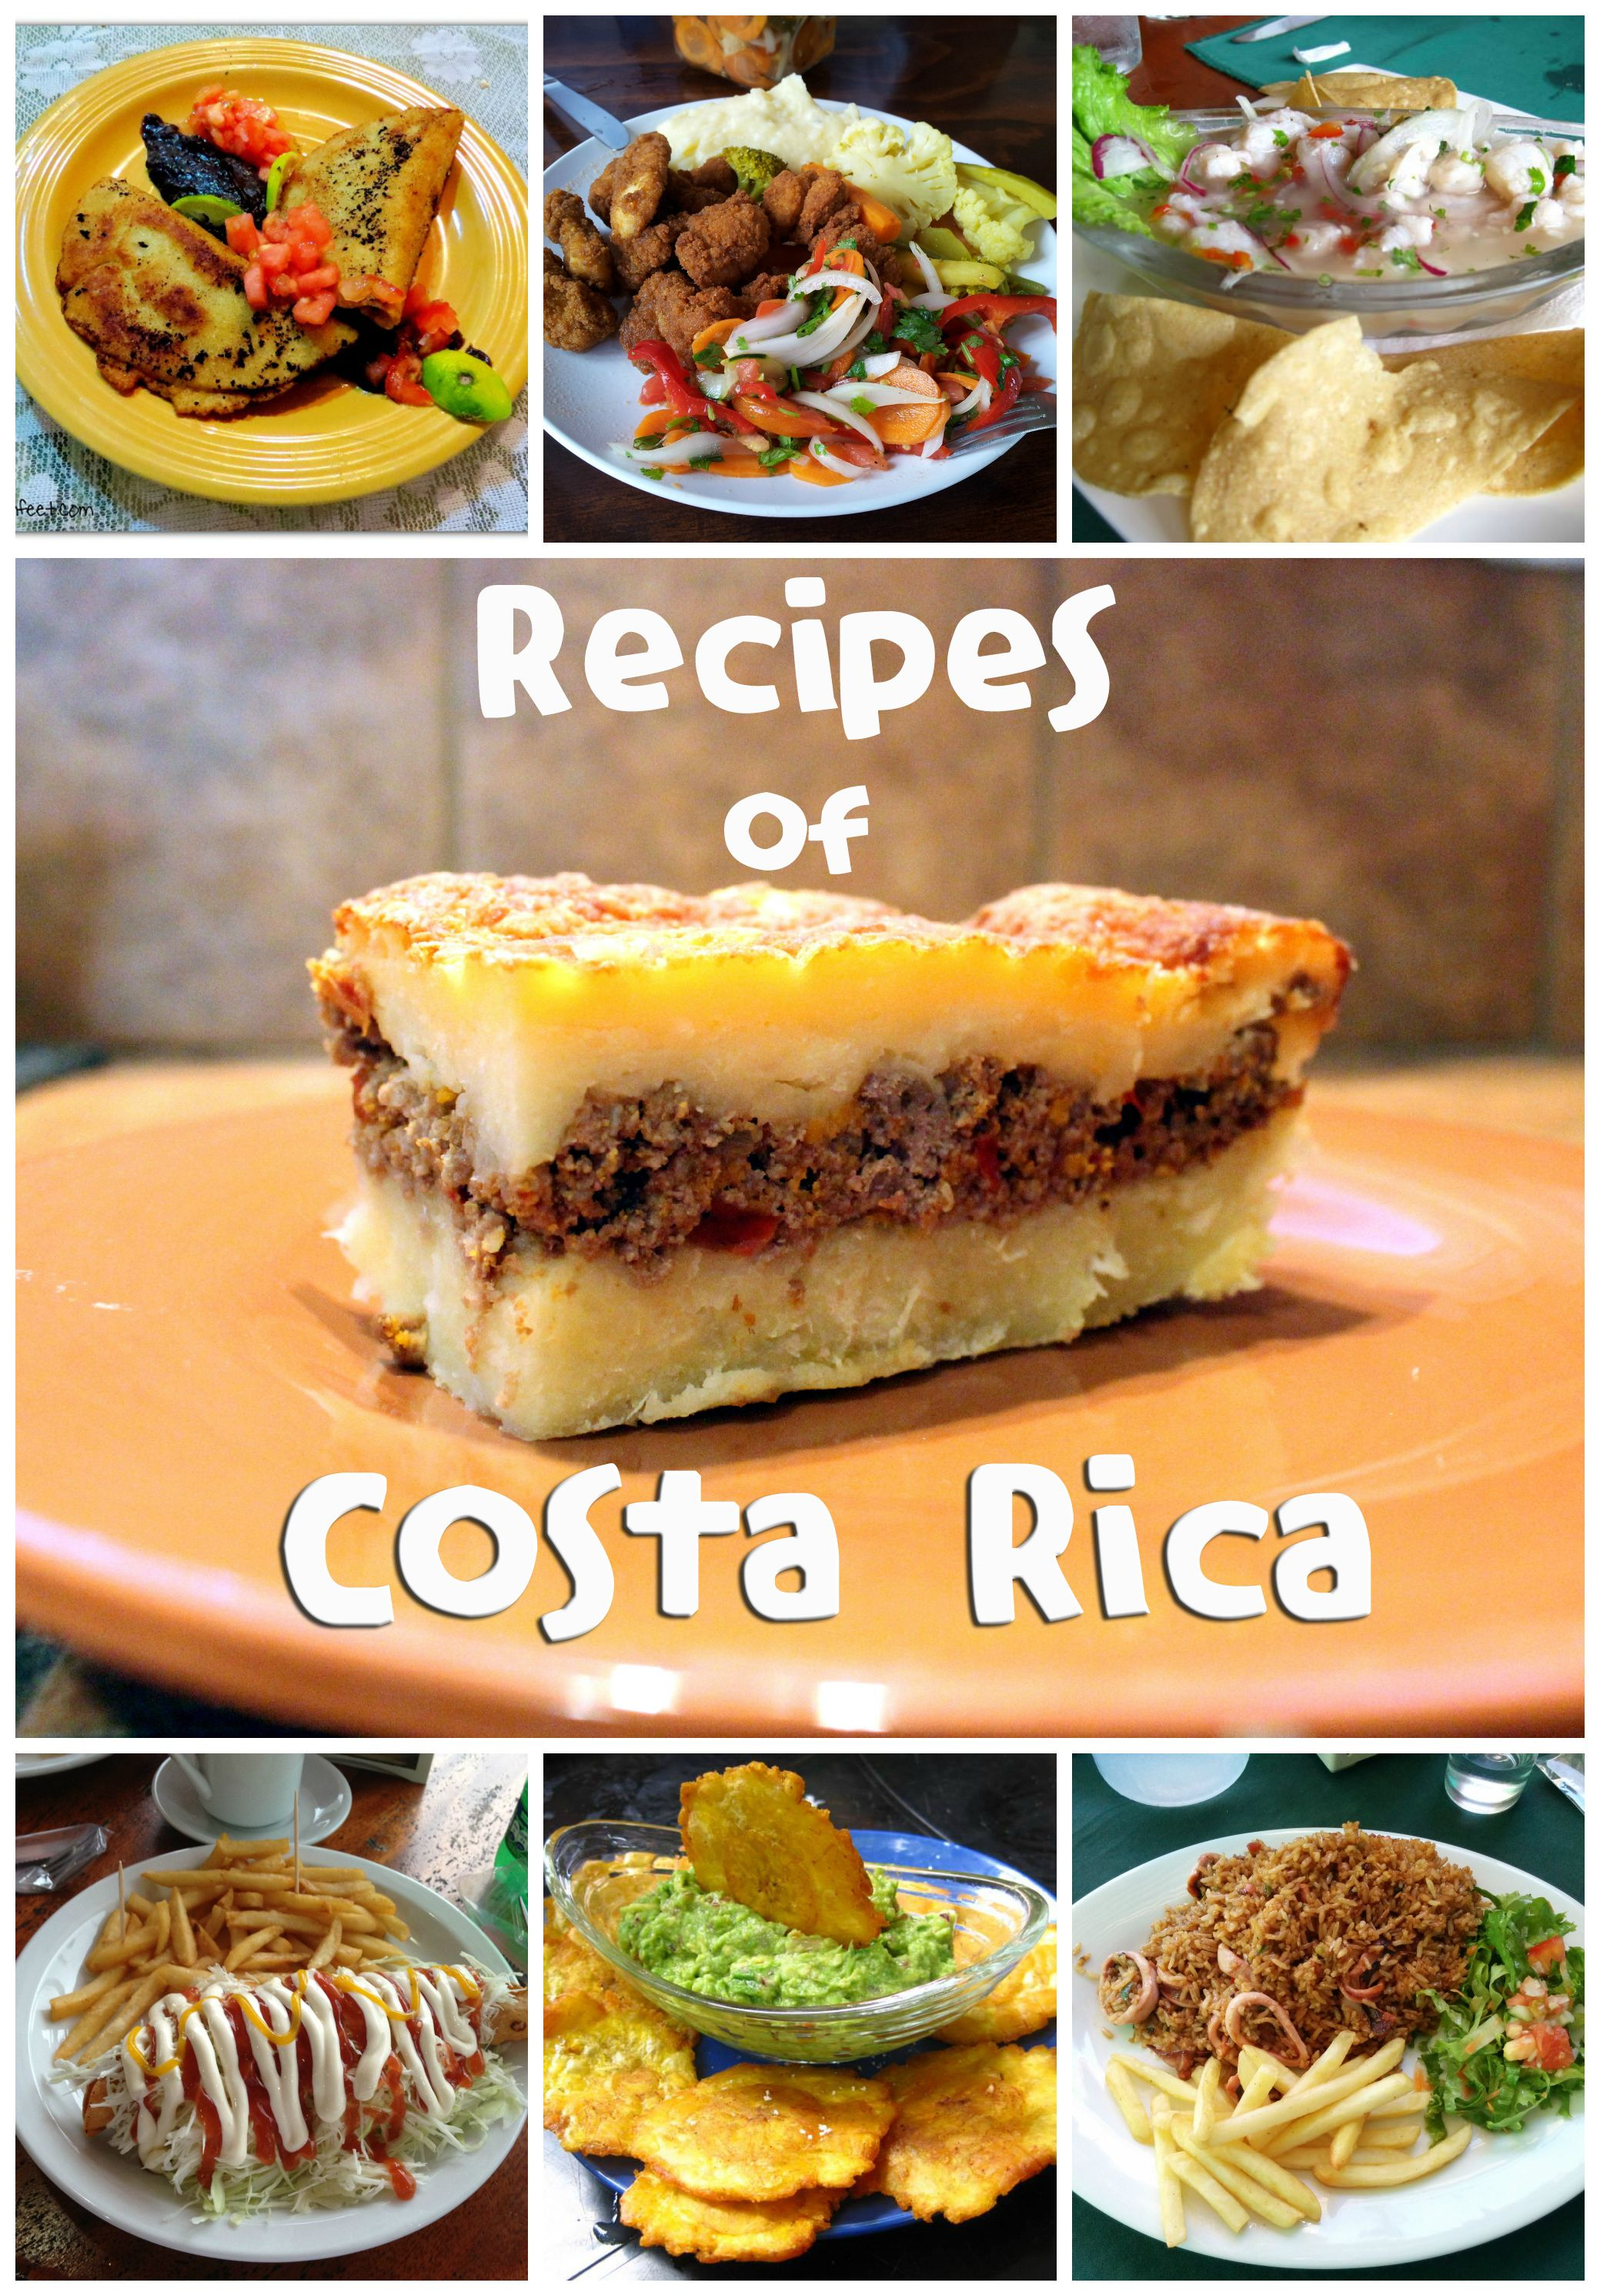 Costa rican recipes empanadas beans and dishes recipes of costa rican dishes including black beans empanadas and more add a little costa rican flavor to your kitchen with these recipes forumfinder Gallery